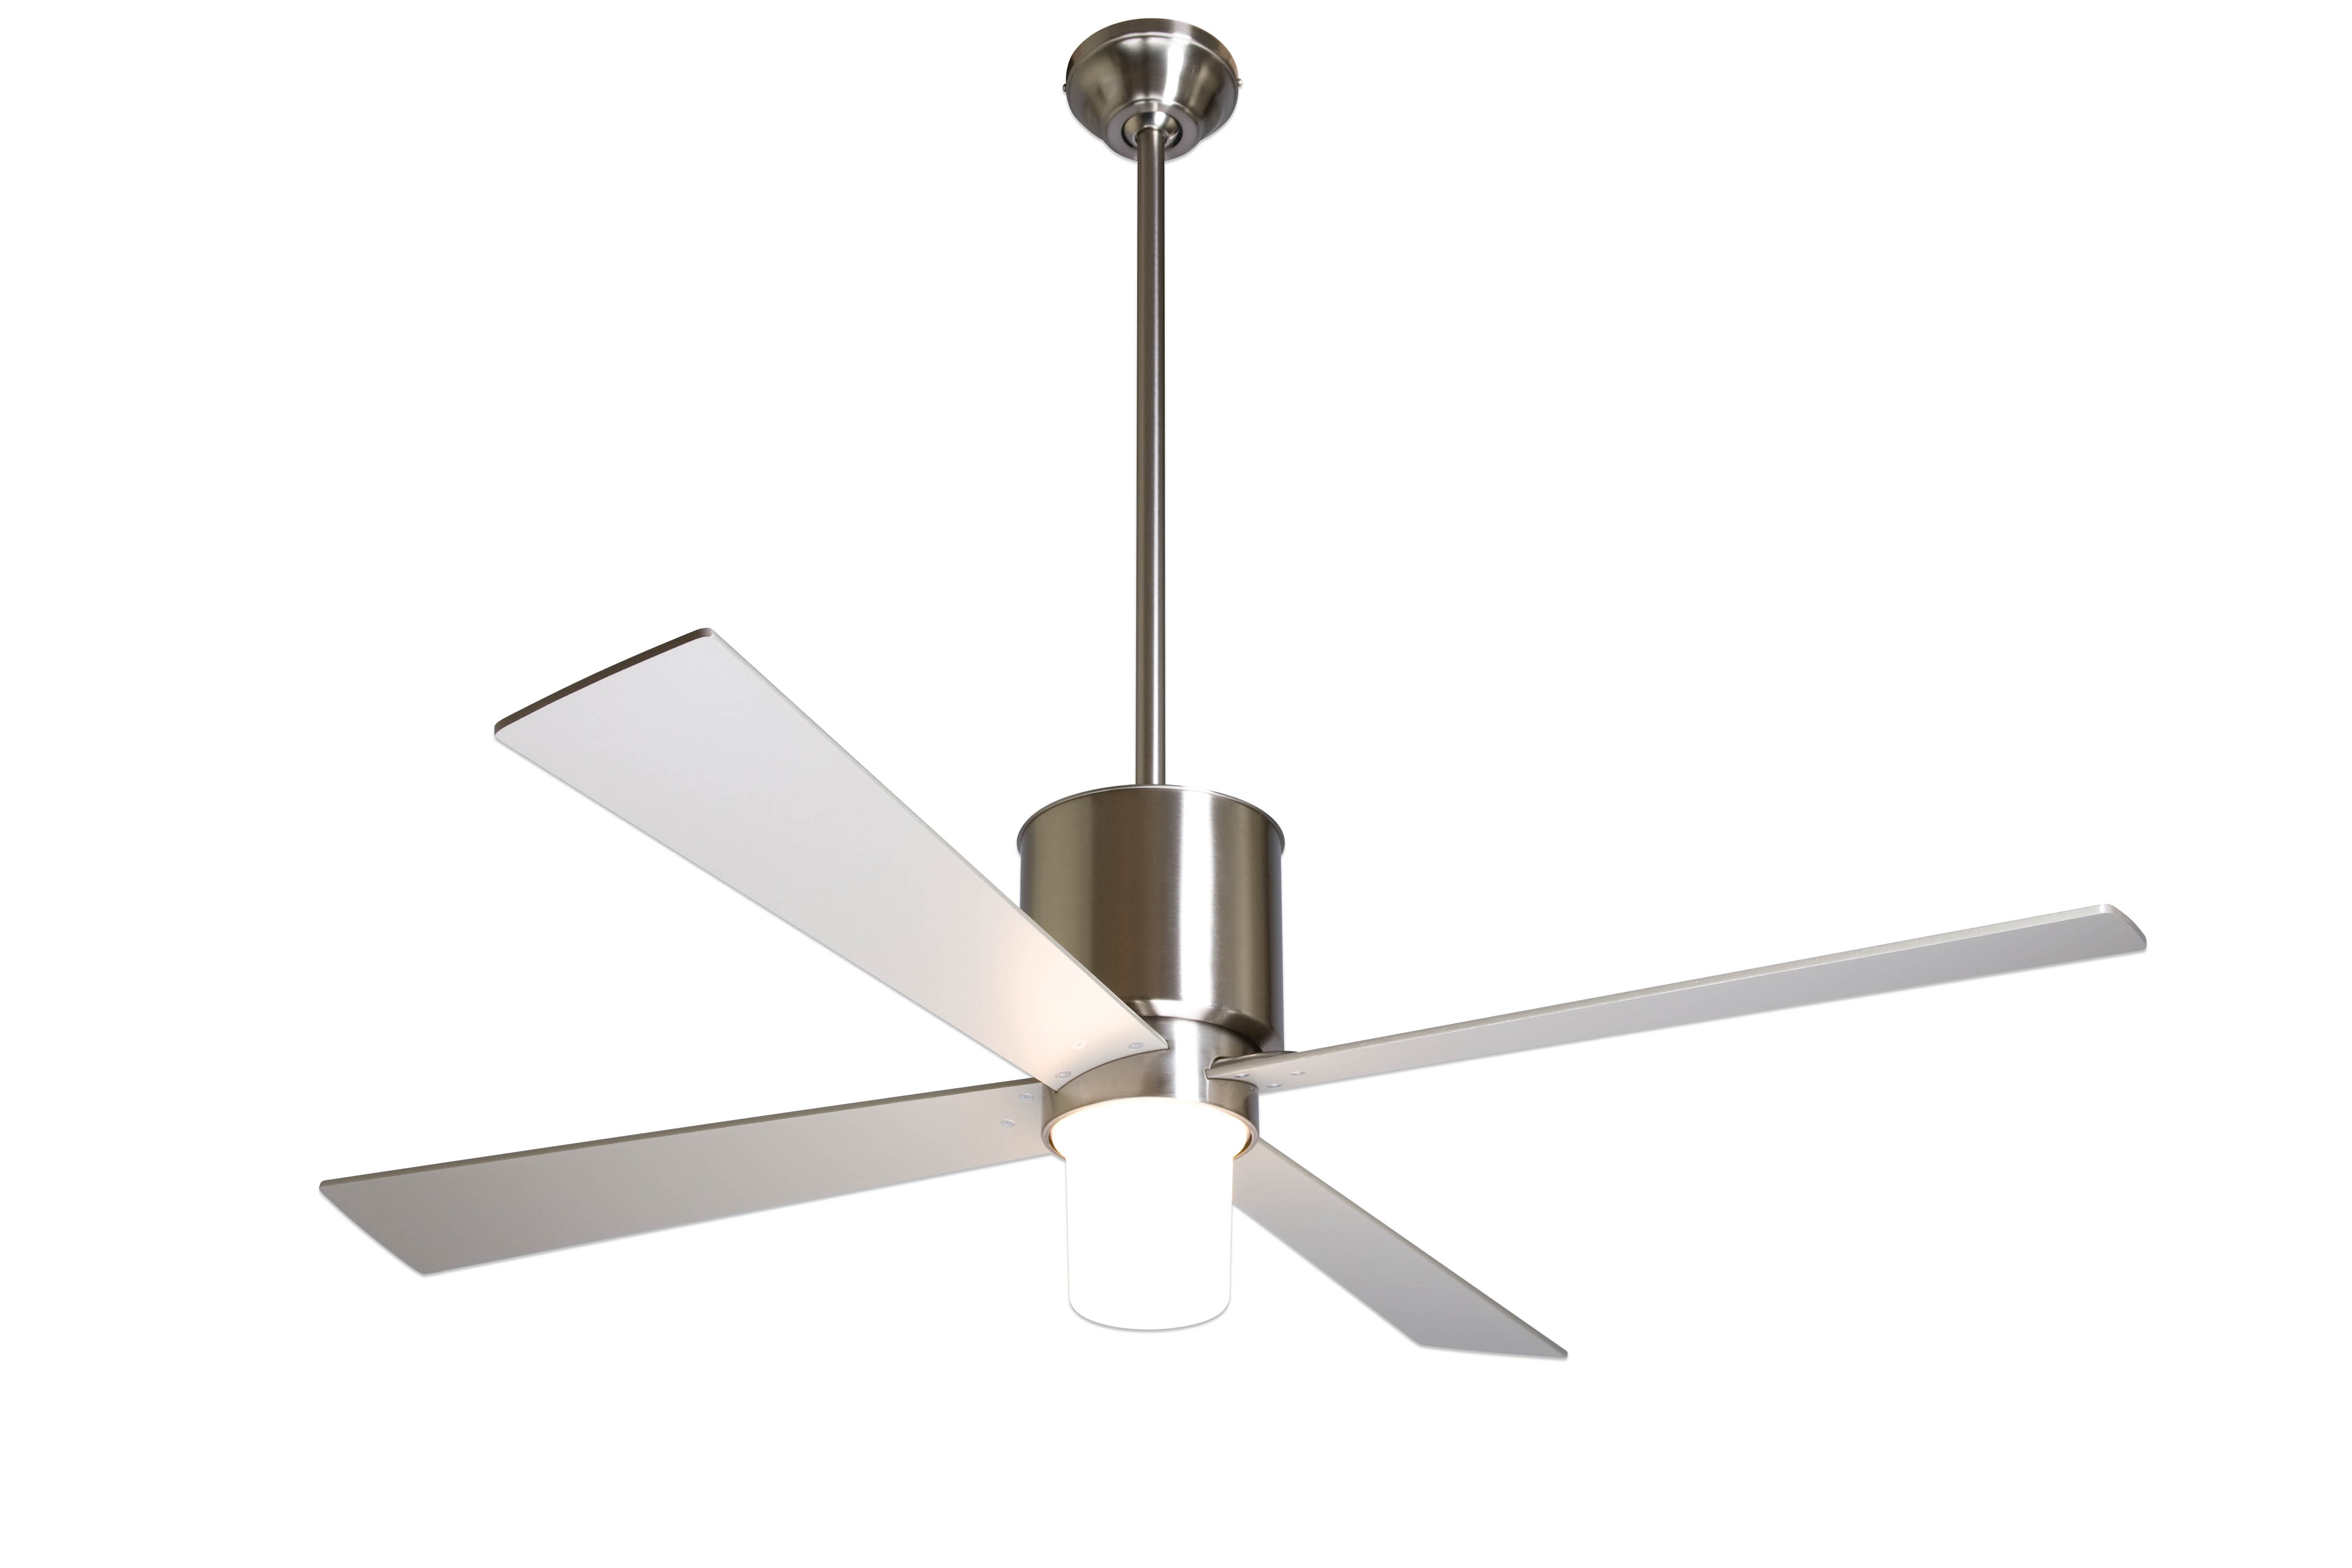 Fresh Modern Machine Age Galvanized Ceiling Fan #18614 Pertaining To Trendy Galvanized Outdoor Ceiling Fans With Light (View 6 of 20)